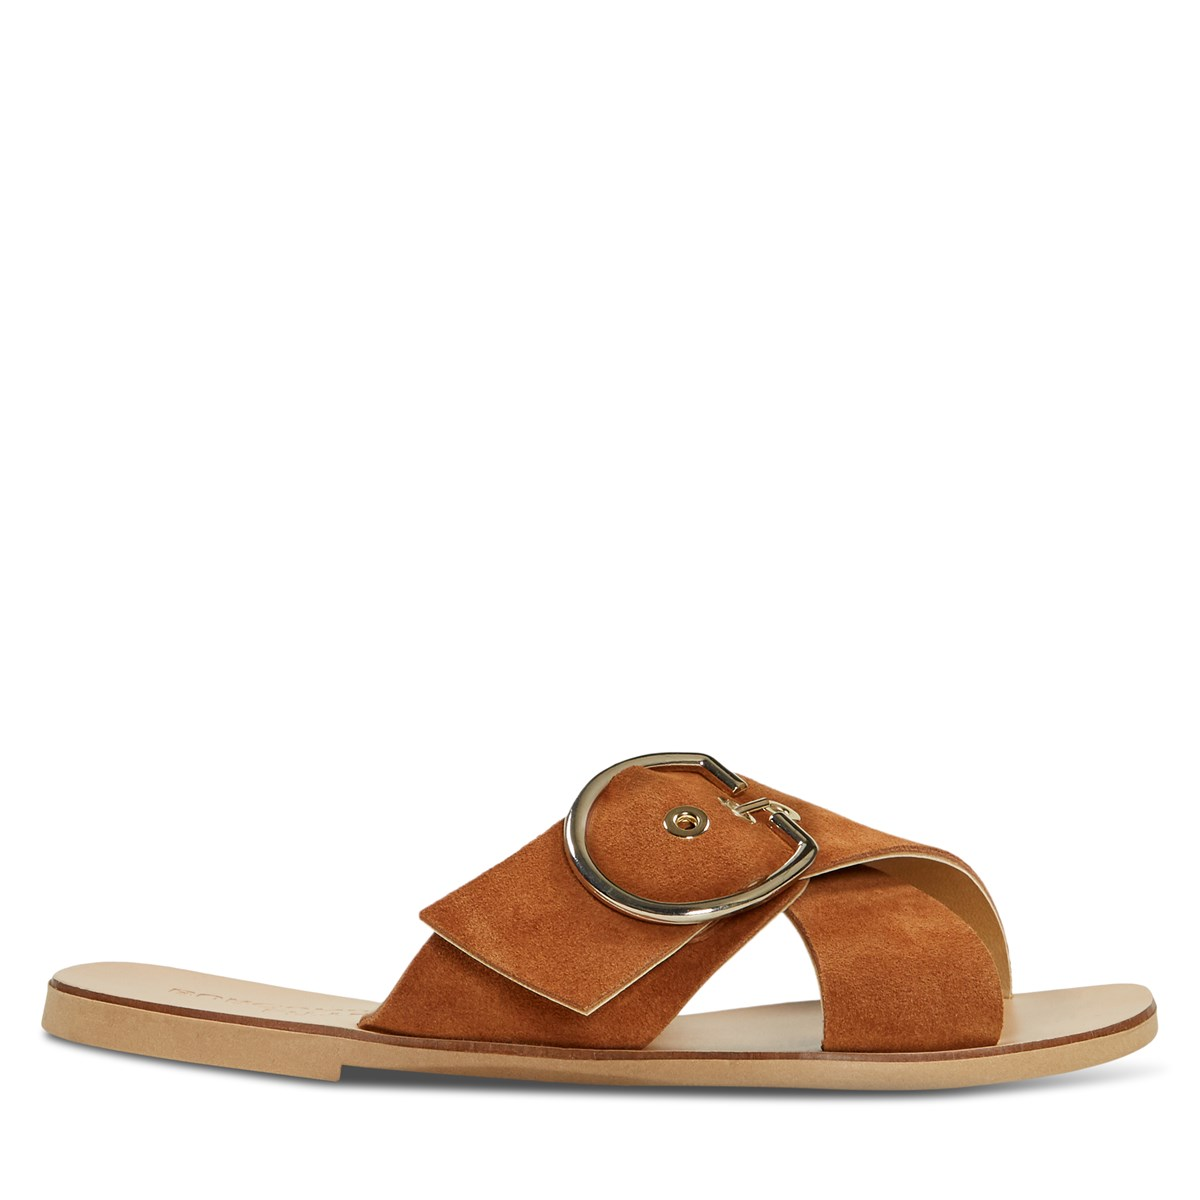 Women's Allegra Slide Sandals in Rust